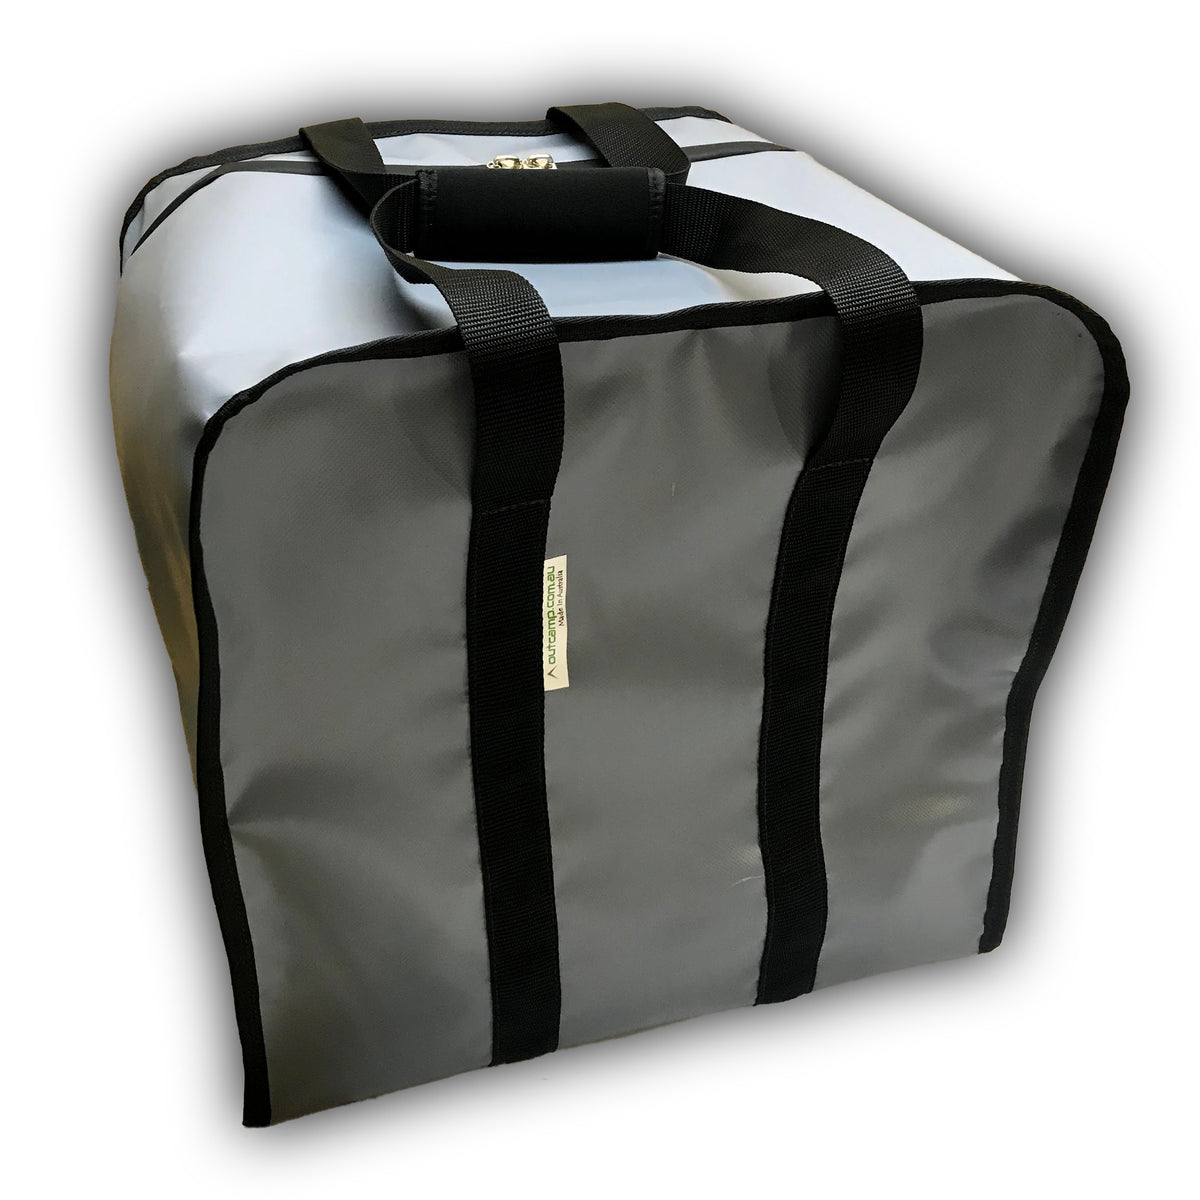 Fiamma Bi-Pot 30 carry bag for the caravan